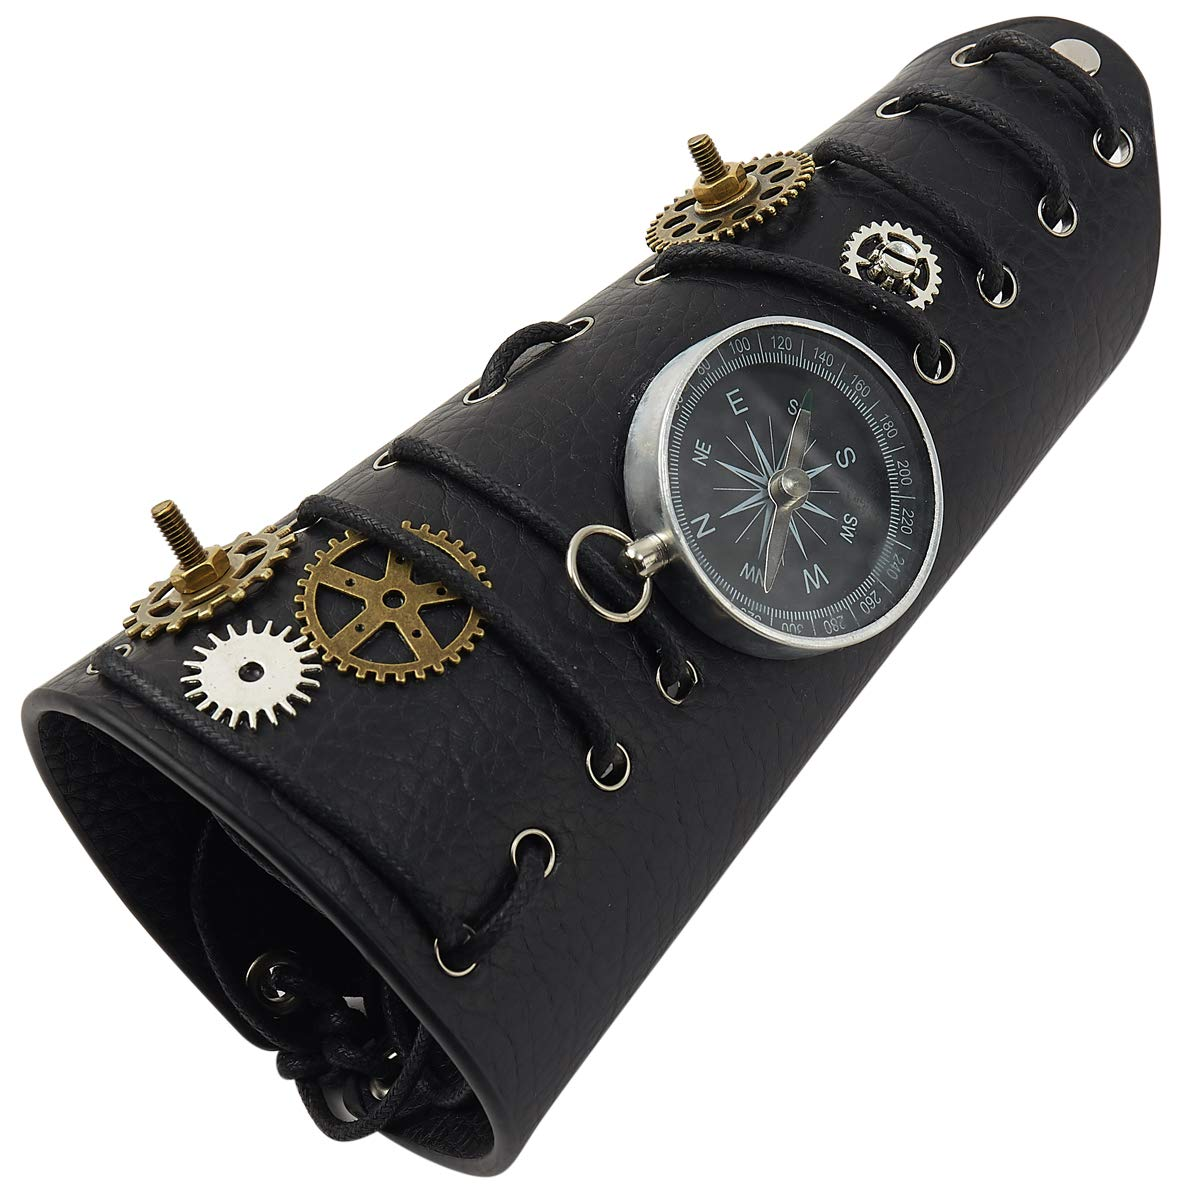 Men's Steampunk Goggles, Guns, Gadgets & Watches KOGOGO Steampunk Arm Armors Leather Bracers Medieval Viking Armguards $21.99 AT vintagedancer.com